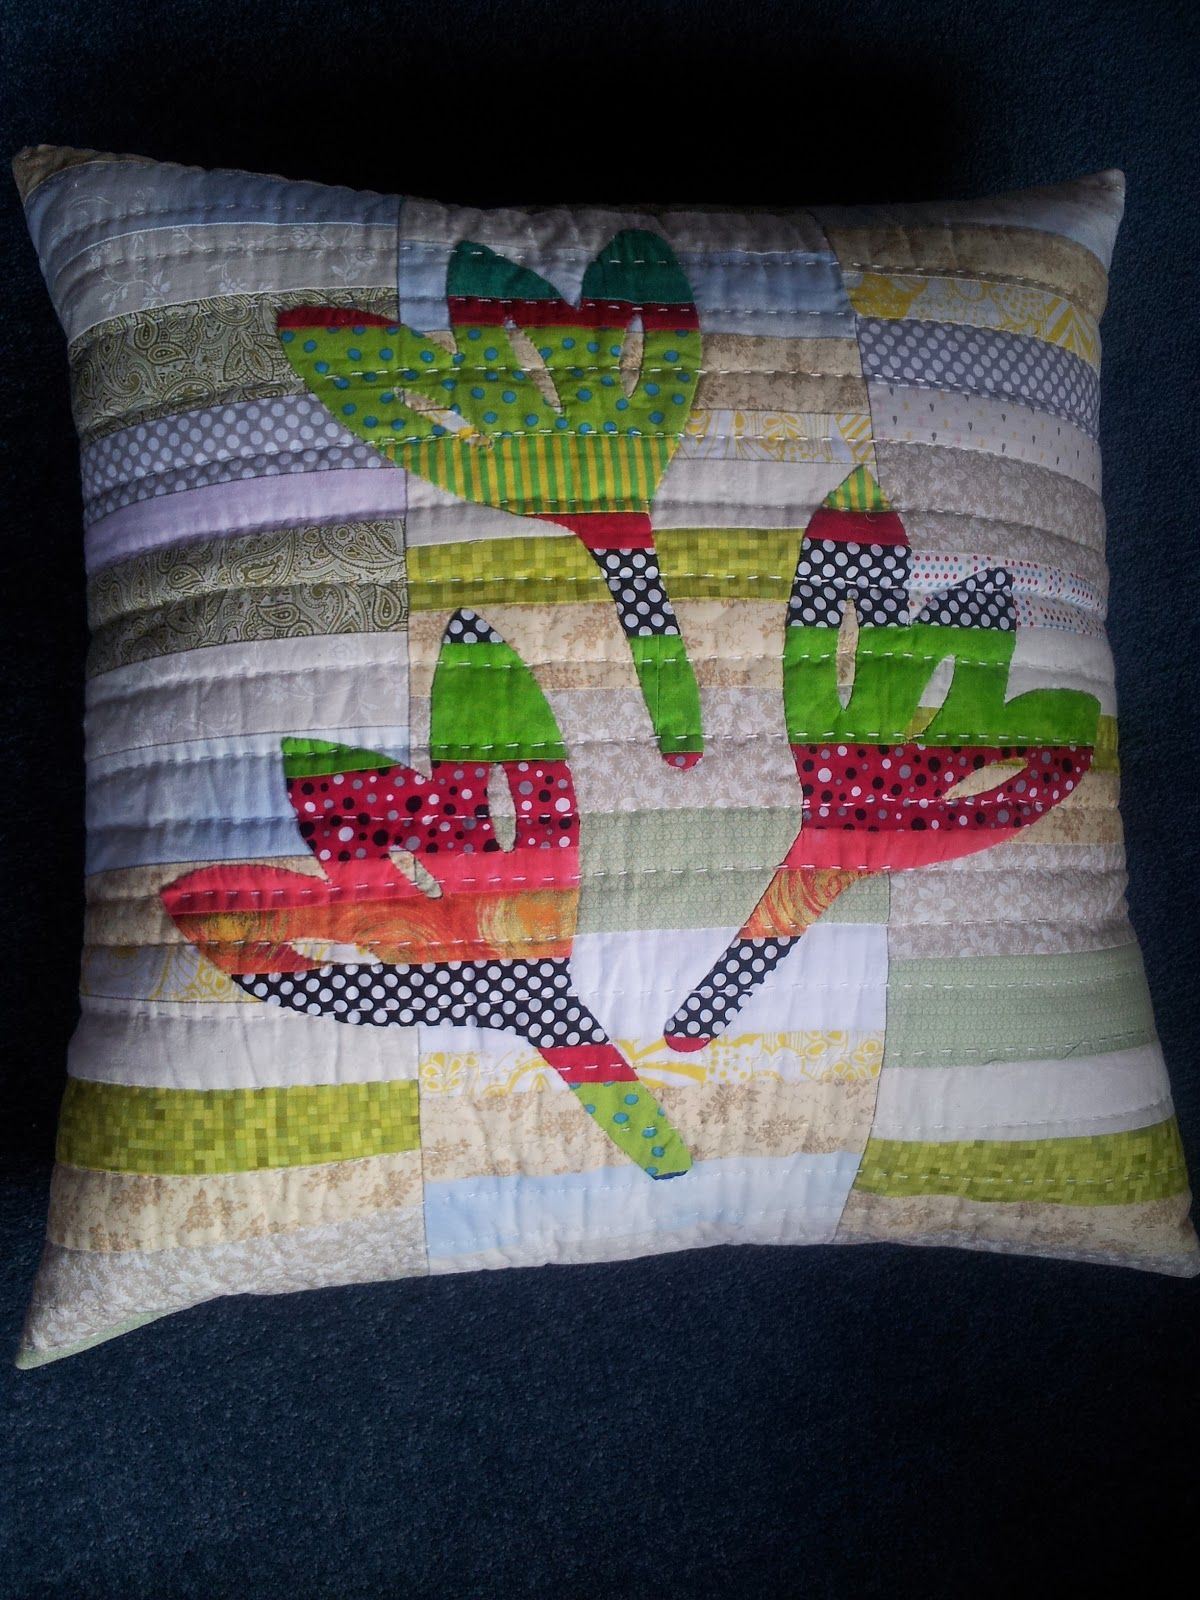 Made with my two hands: Scrap, applique cushion